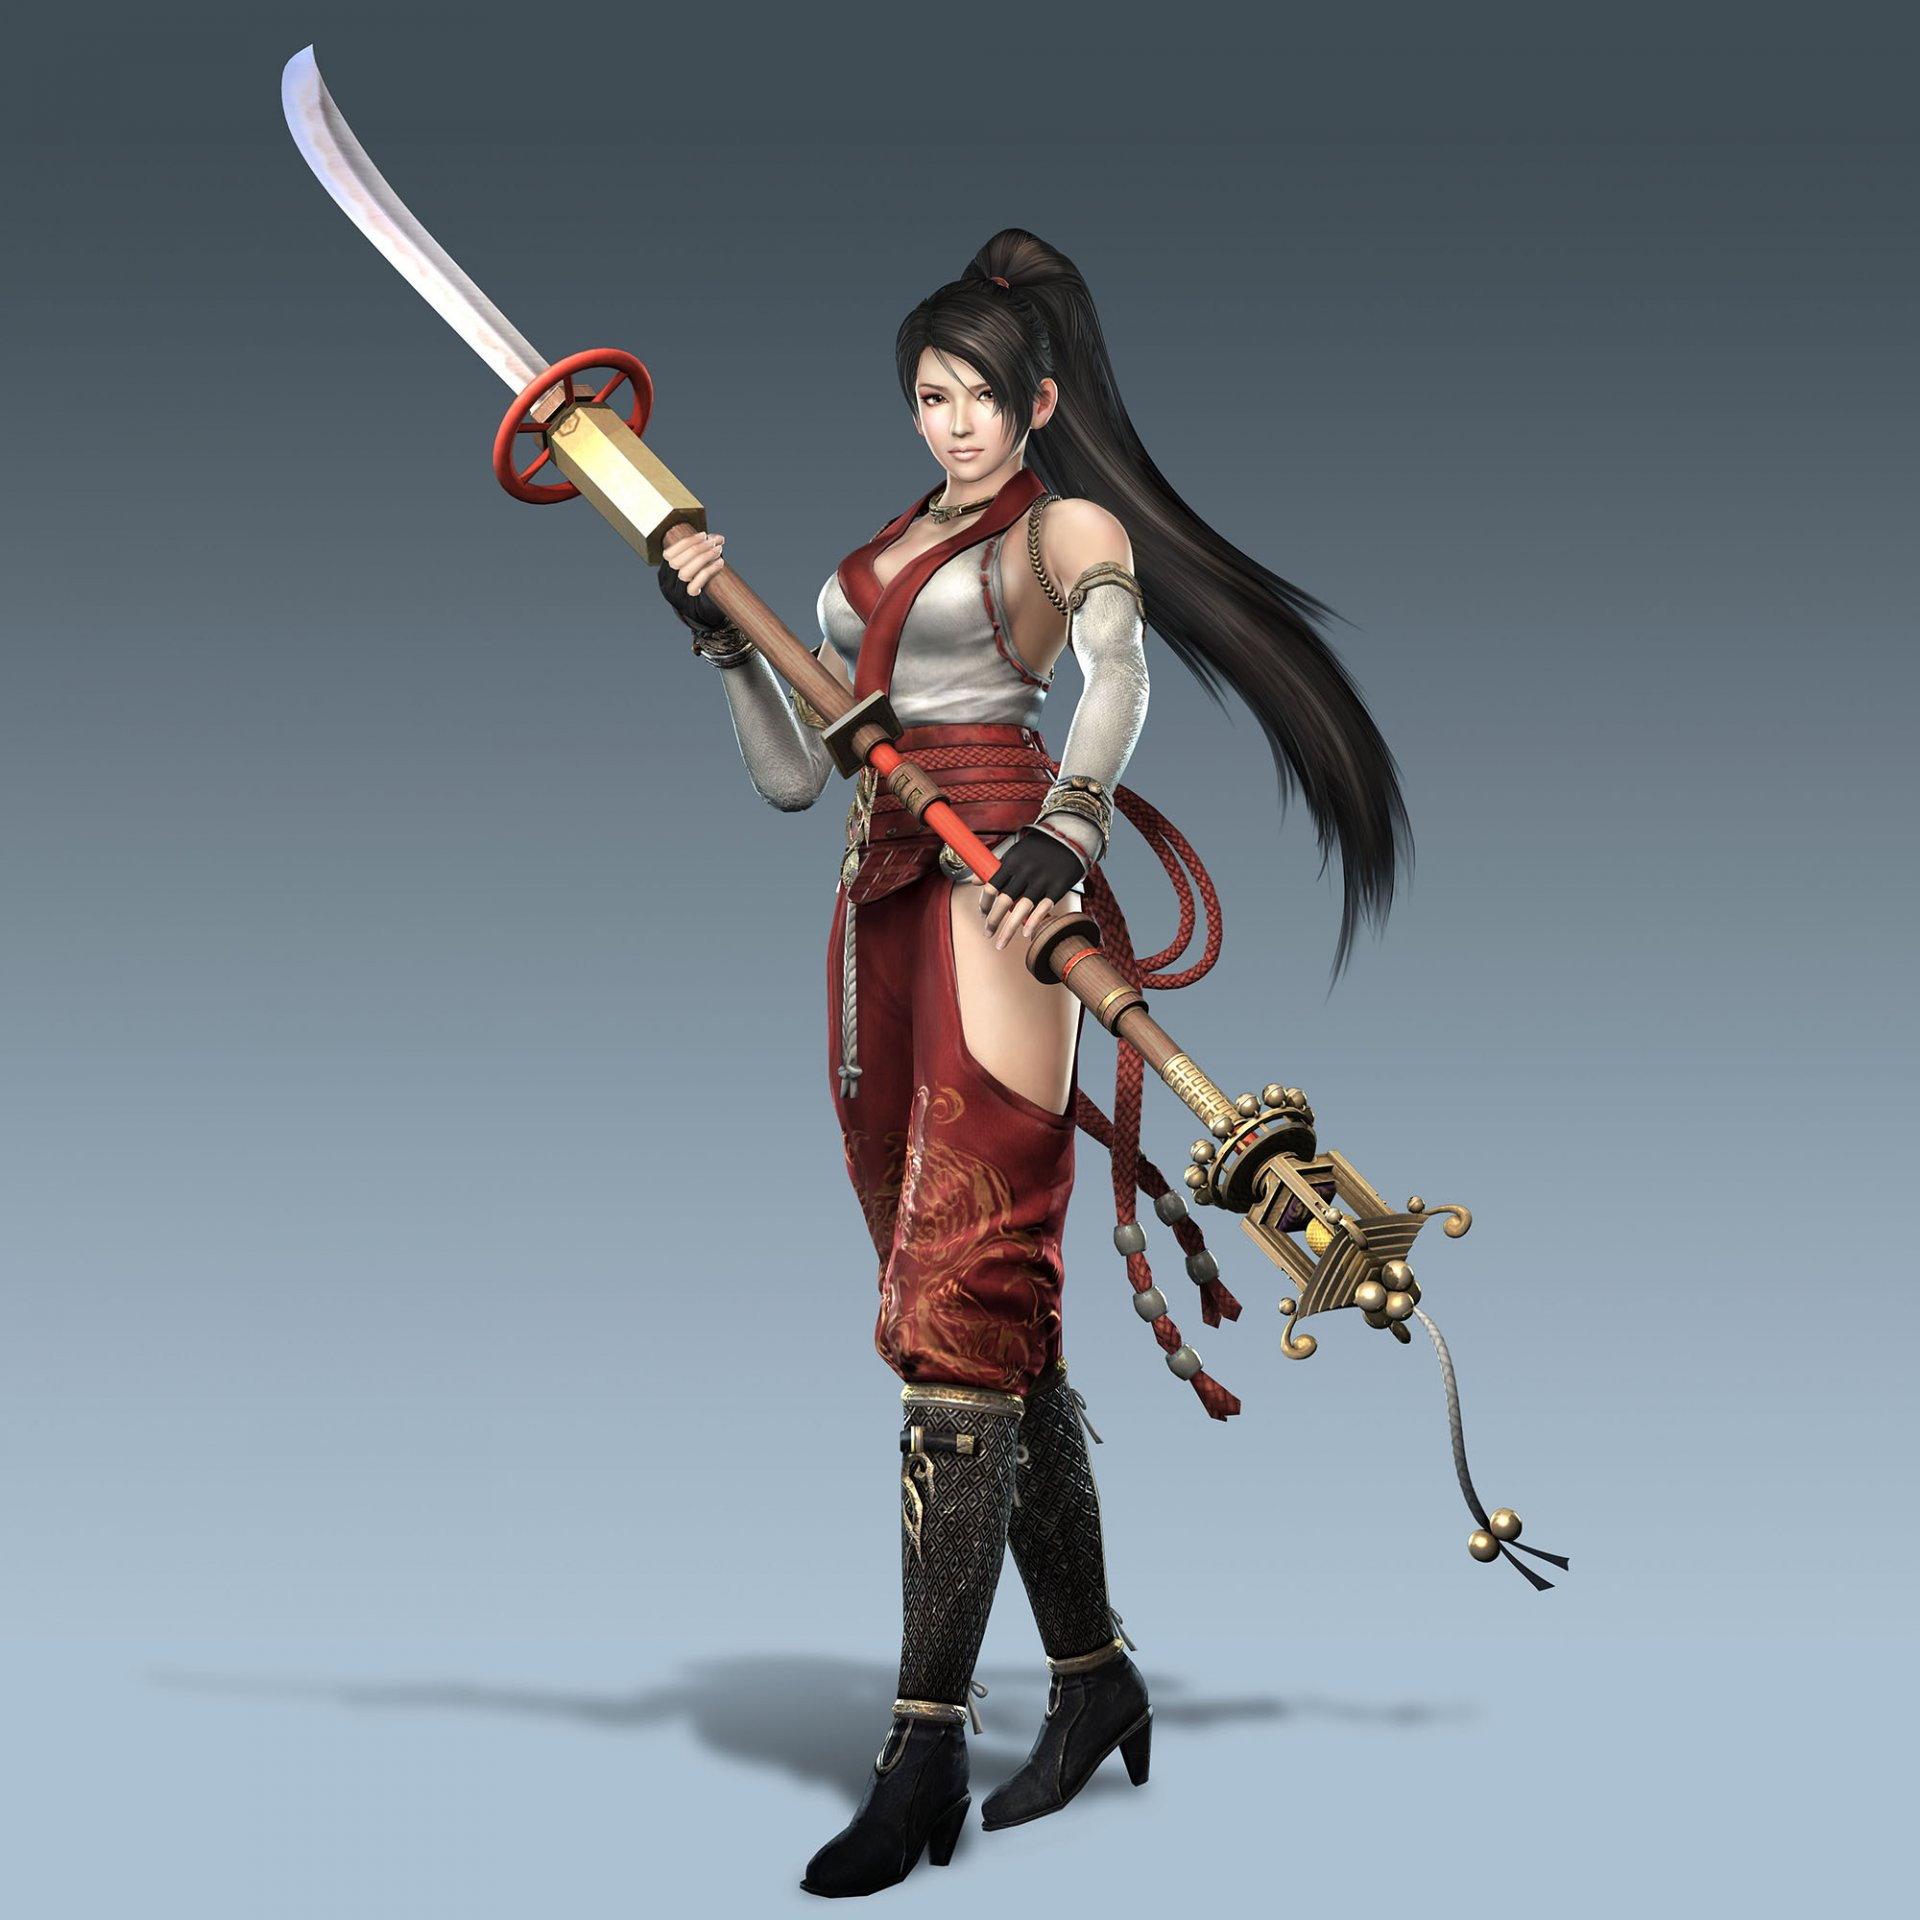 Warriors orochi 3 e henati 3d sex images